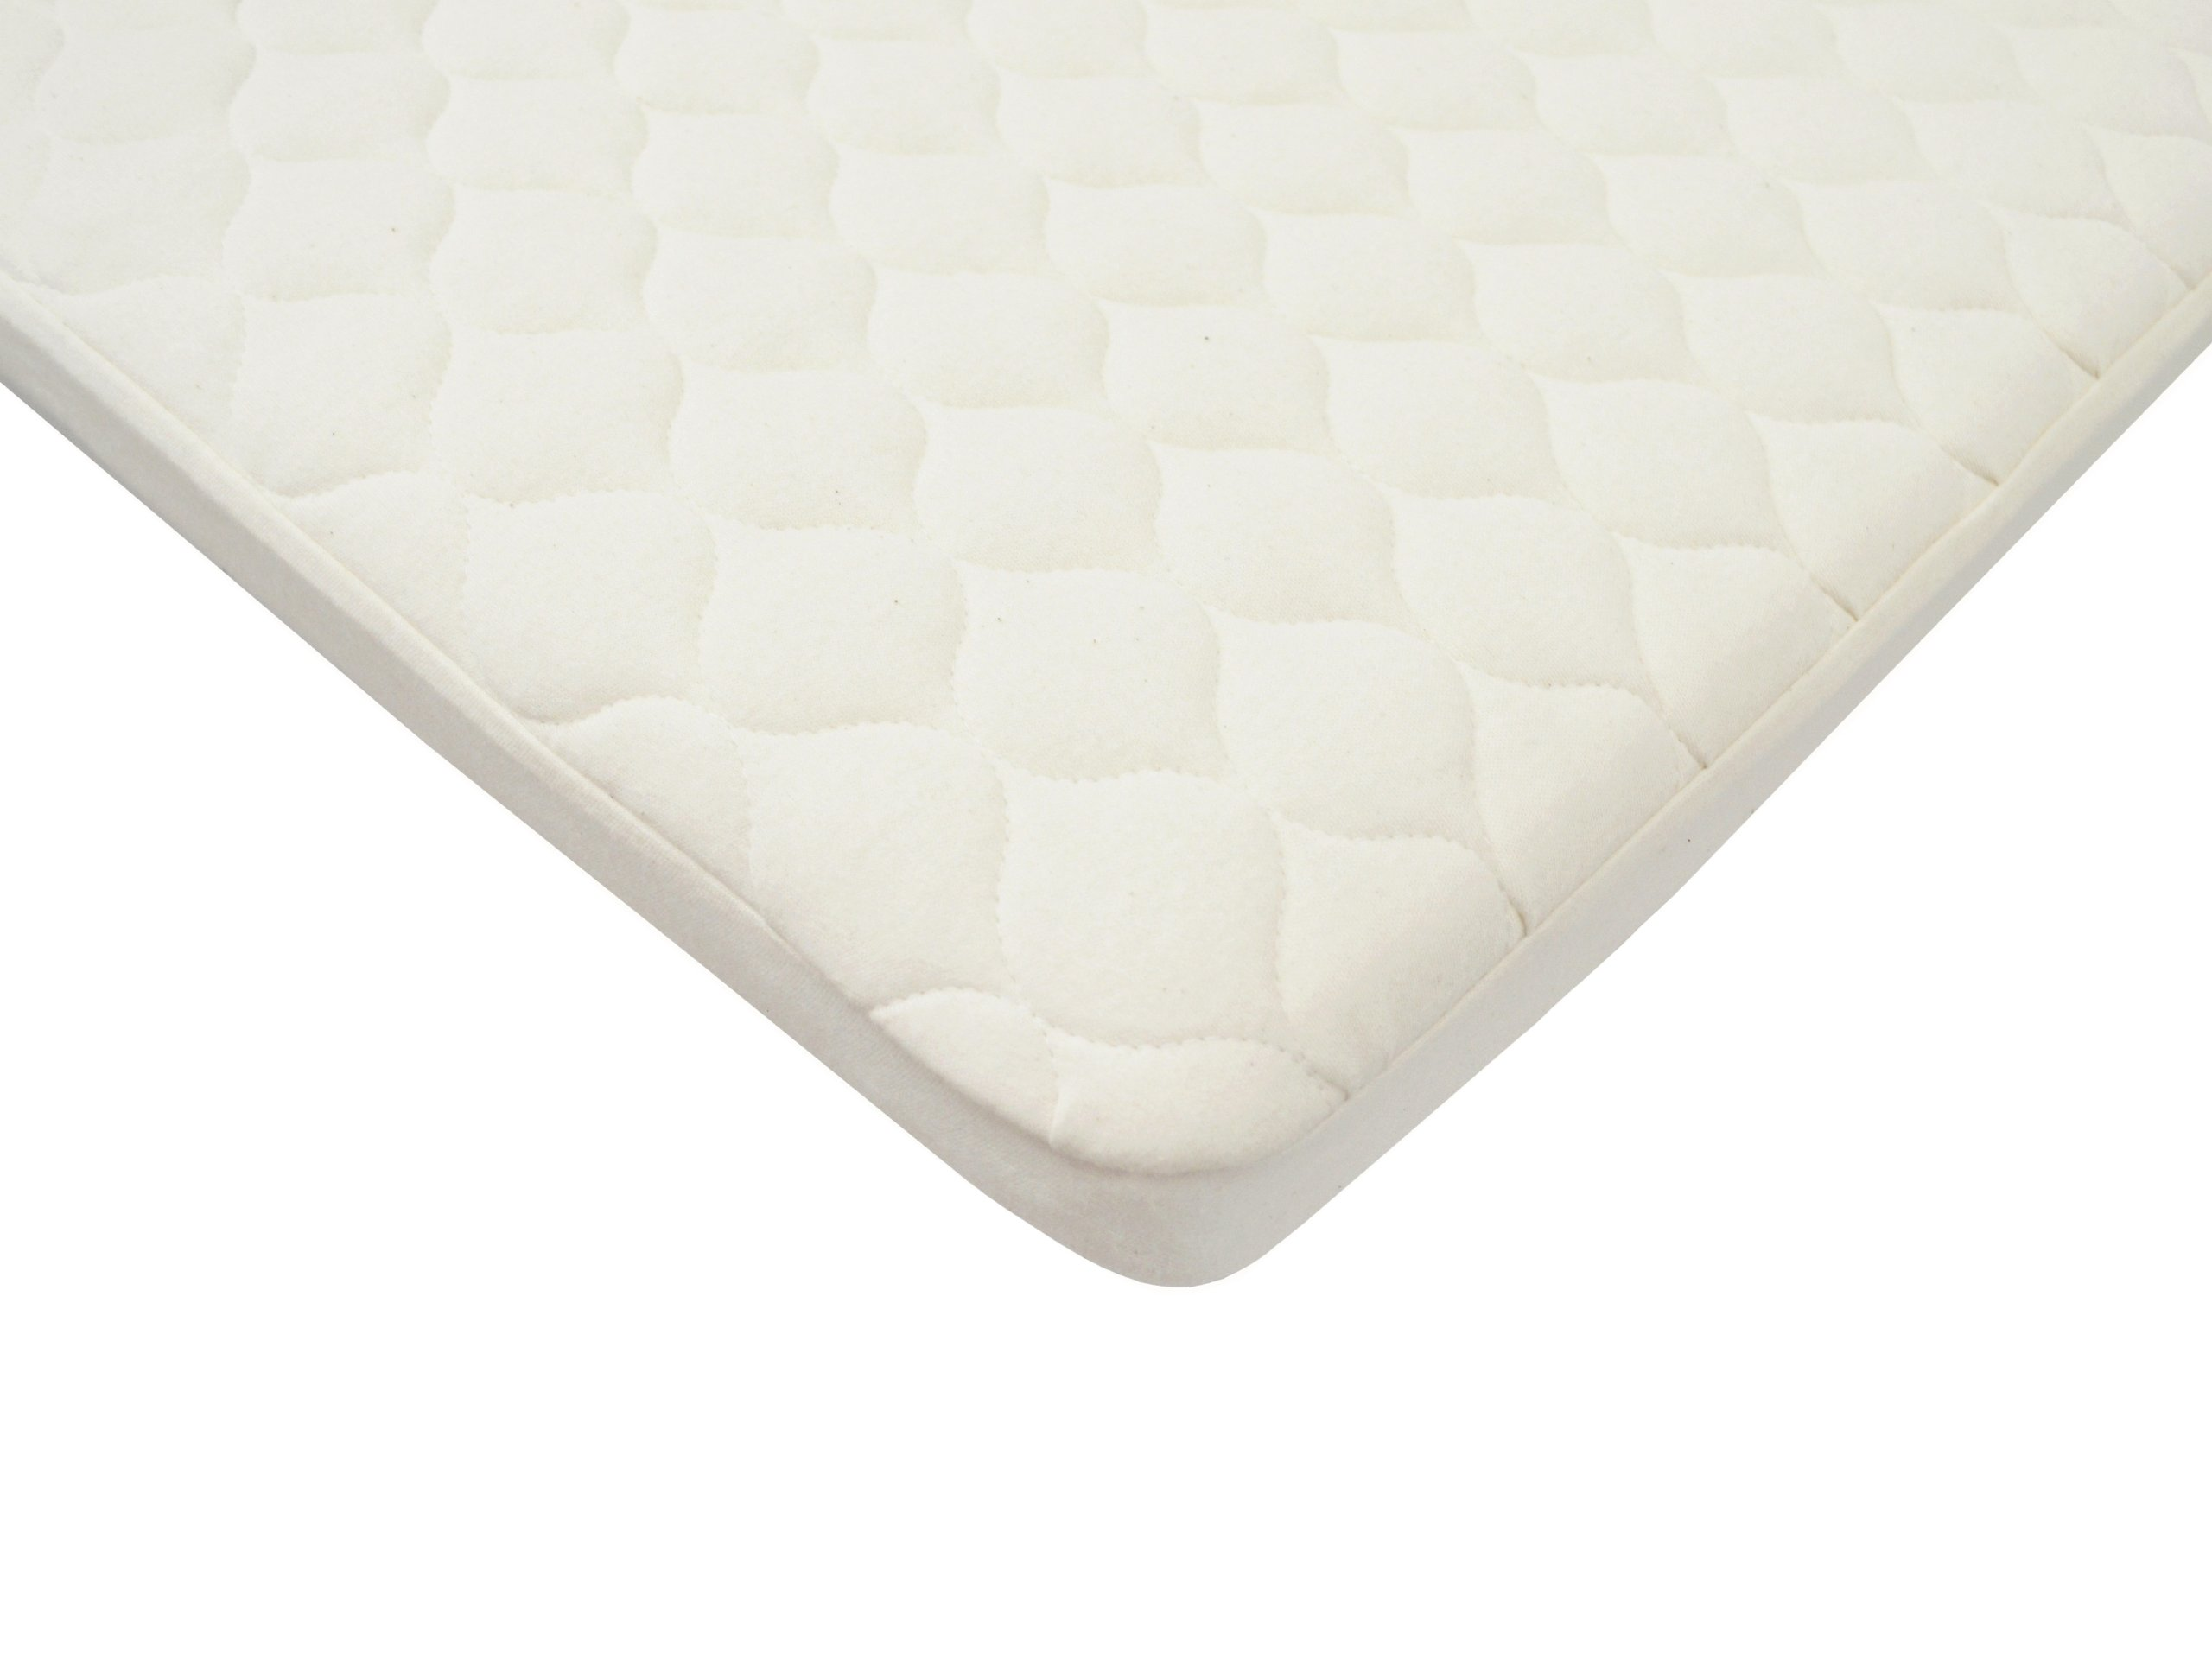 American Baby Company Waterproof Quilted Pack N Play Playard Size Fitted Mattress Cover made with Organic Cotton, Natural Color